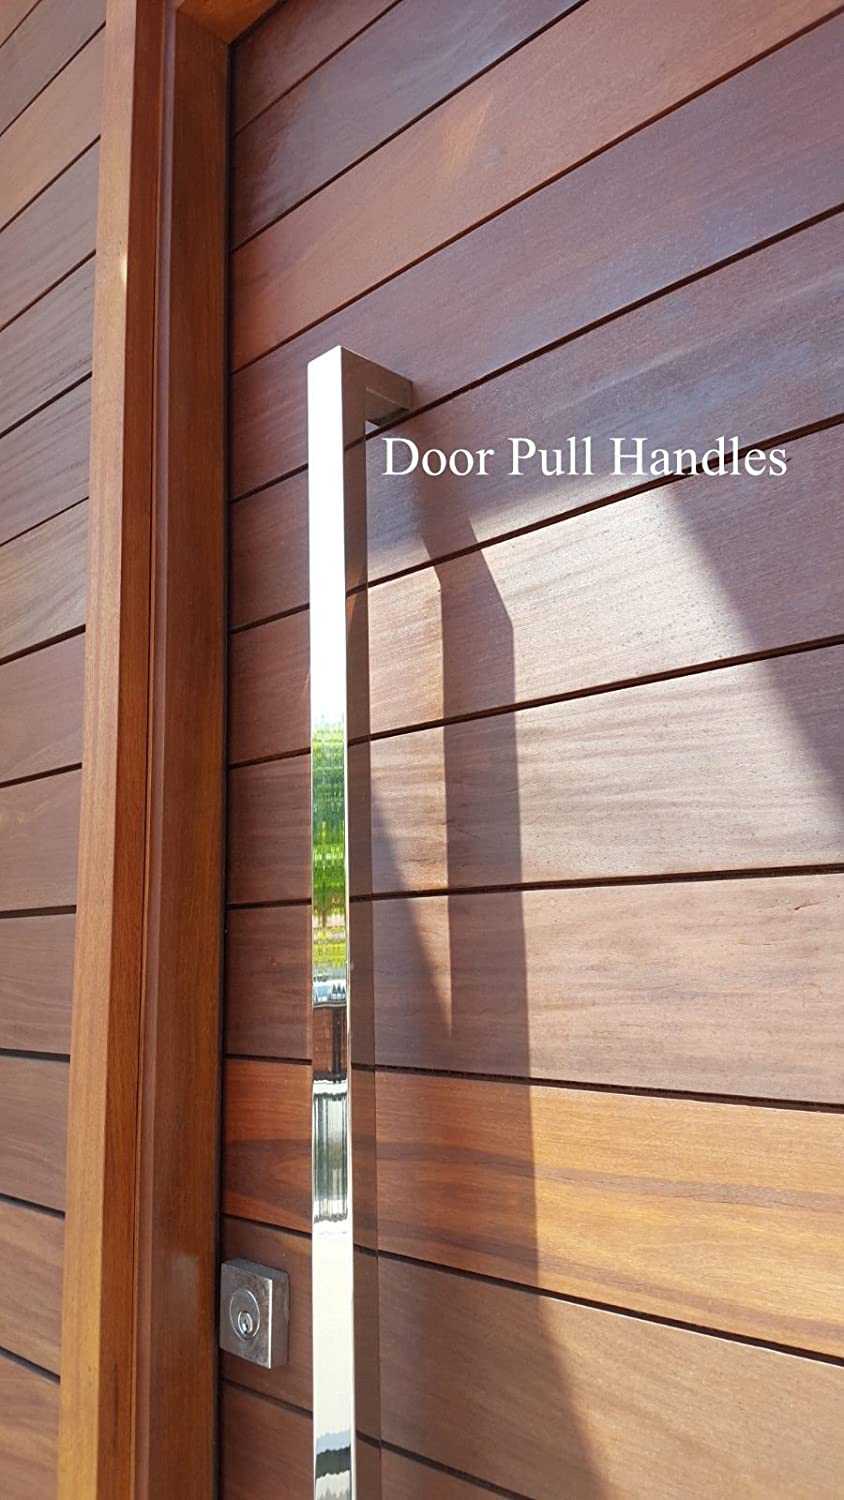 166 Rectangular-shaped Modern Stainless Steel Sus304 Entrance Entry Commercial Office Store Front Wood Timber Glass Garage Aluminum Business Office Door Pull Push Handles Double-sided 64 Inches //1600x25x38mm